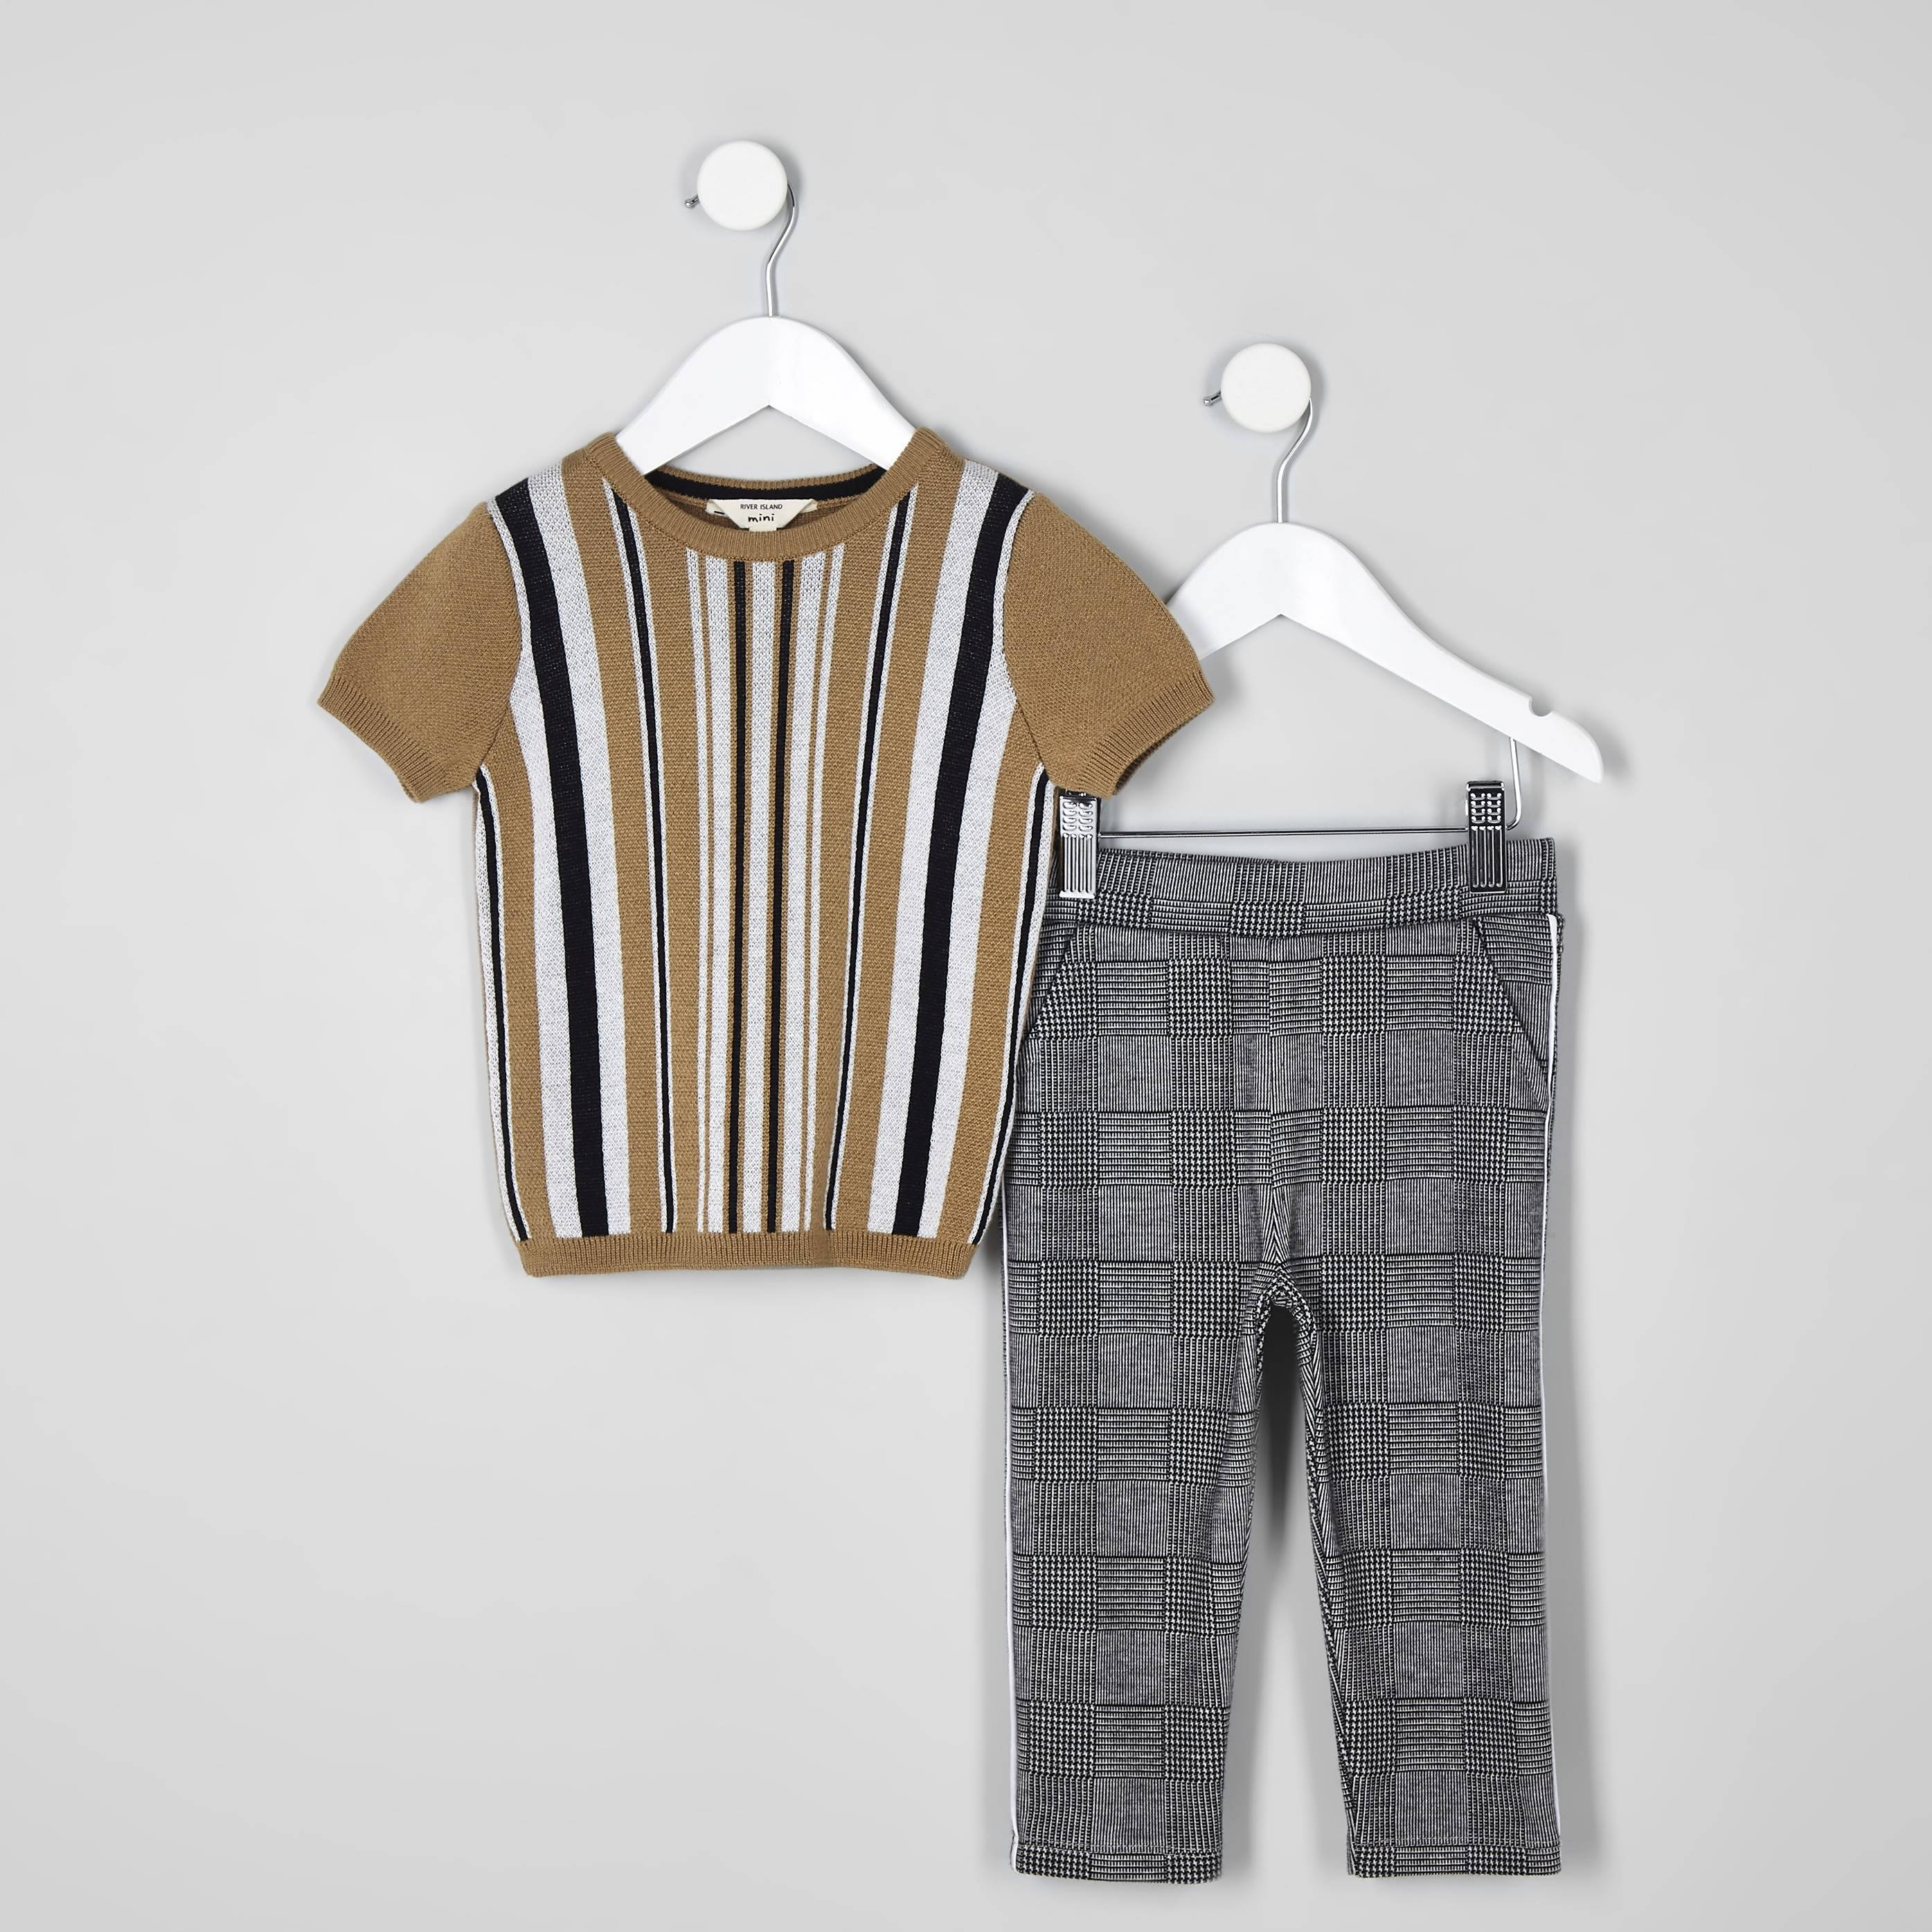 River Island Mens Baby Boys Brown stripe T-shirt outfit (3-6 Mths)